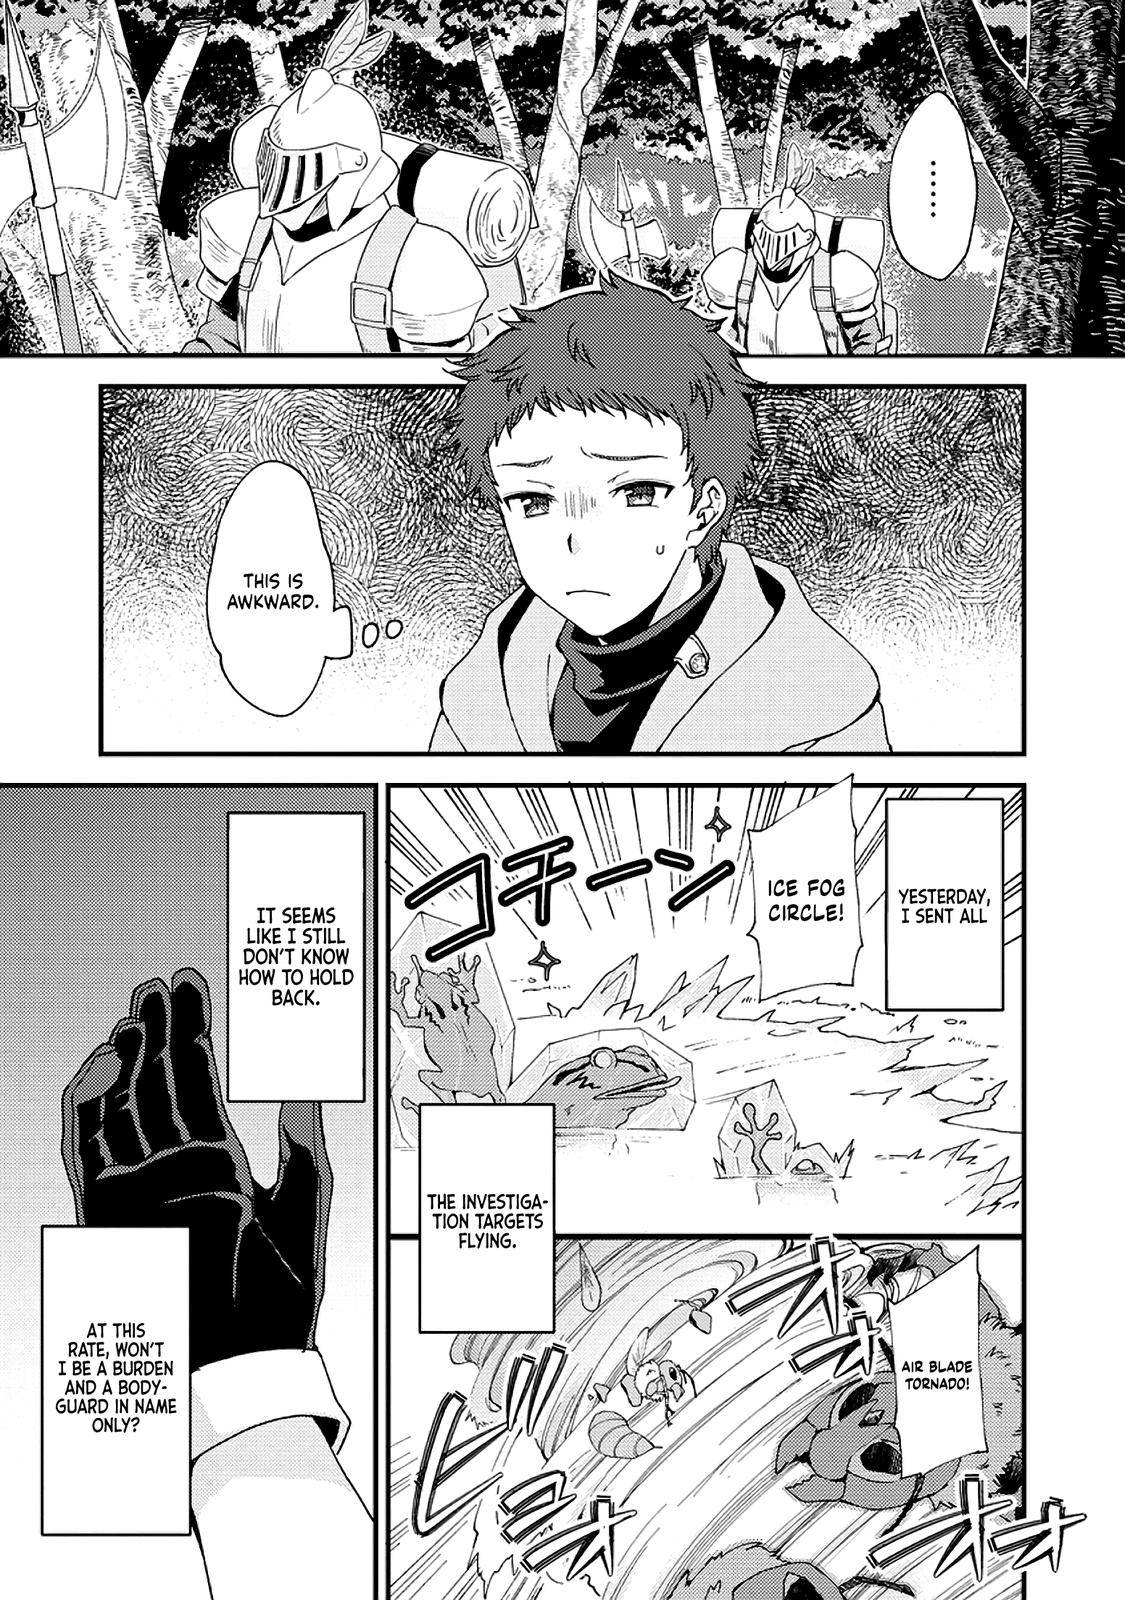 A Sword Master Childhood Friend Power Harassed Me Harshly - chapter 6 - #2